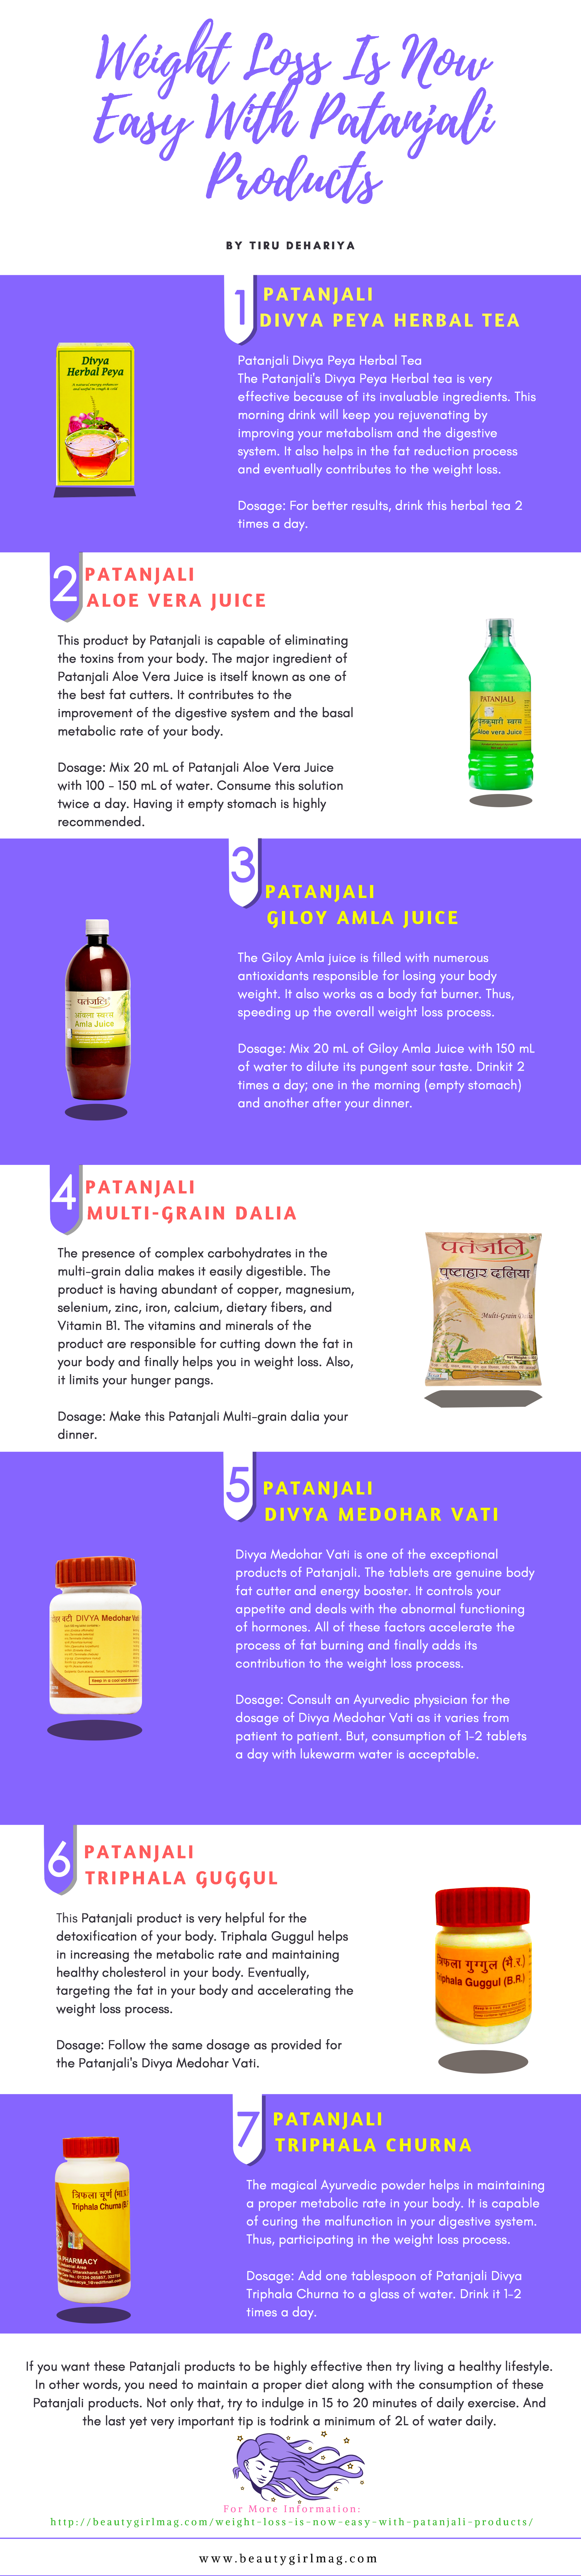 Weight loss is now easy with patanjali products